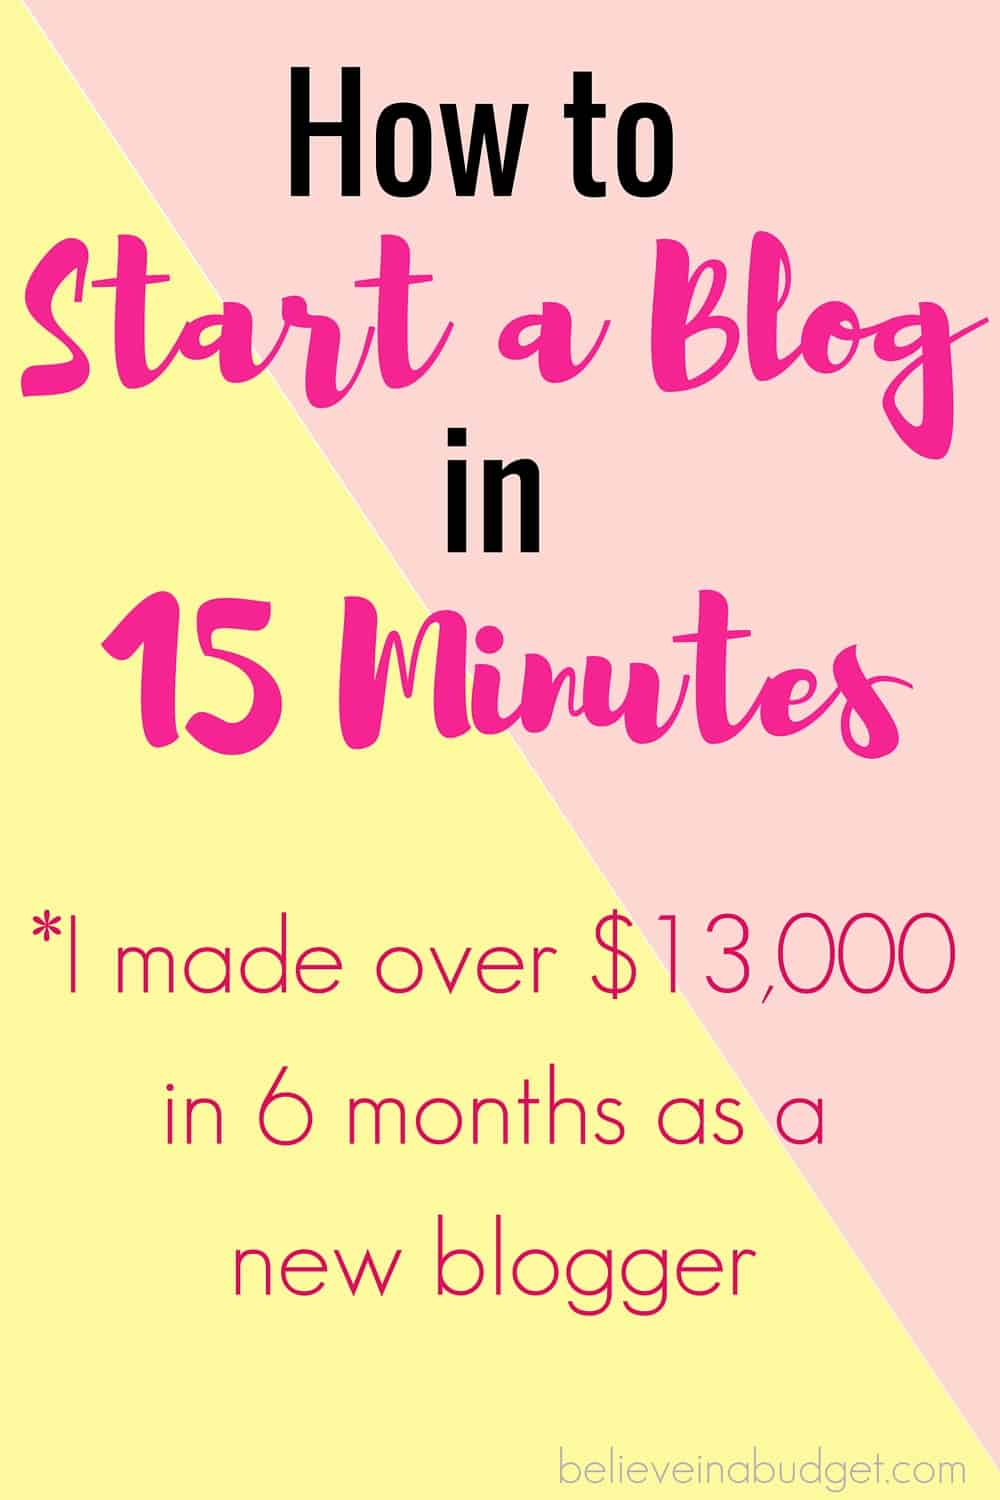 Learn how to start a blog today! Starting a blog is the best side hustle I have ever done to earn extra money! I was able to set up and start a blog for really cheap and then I made over $13,000 in less than six months as a new blogger.